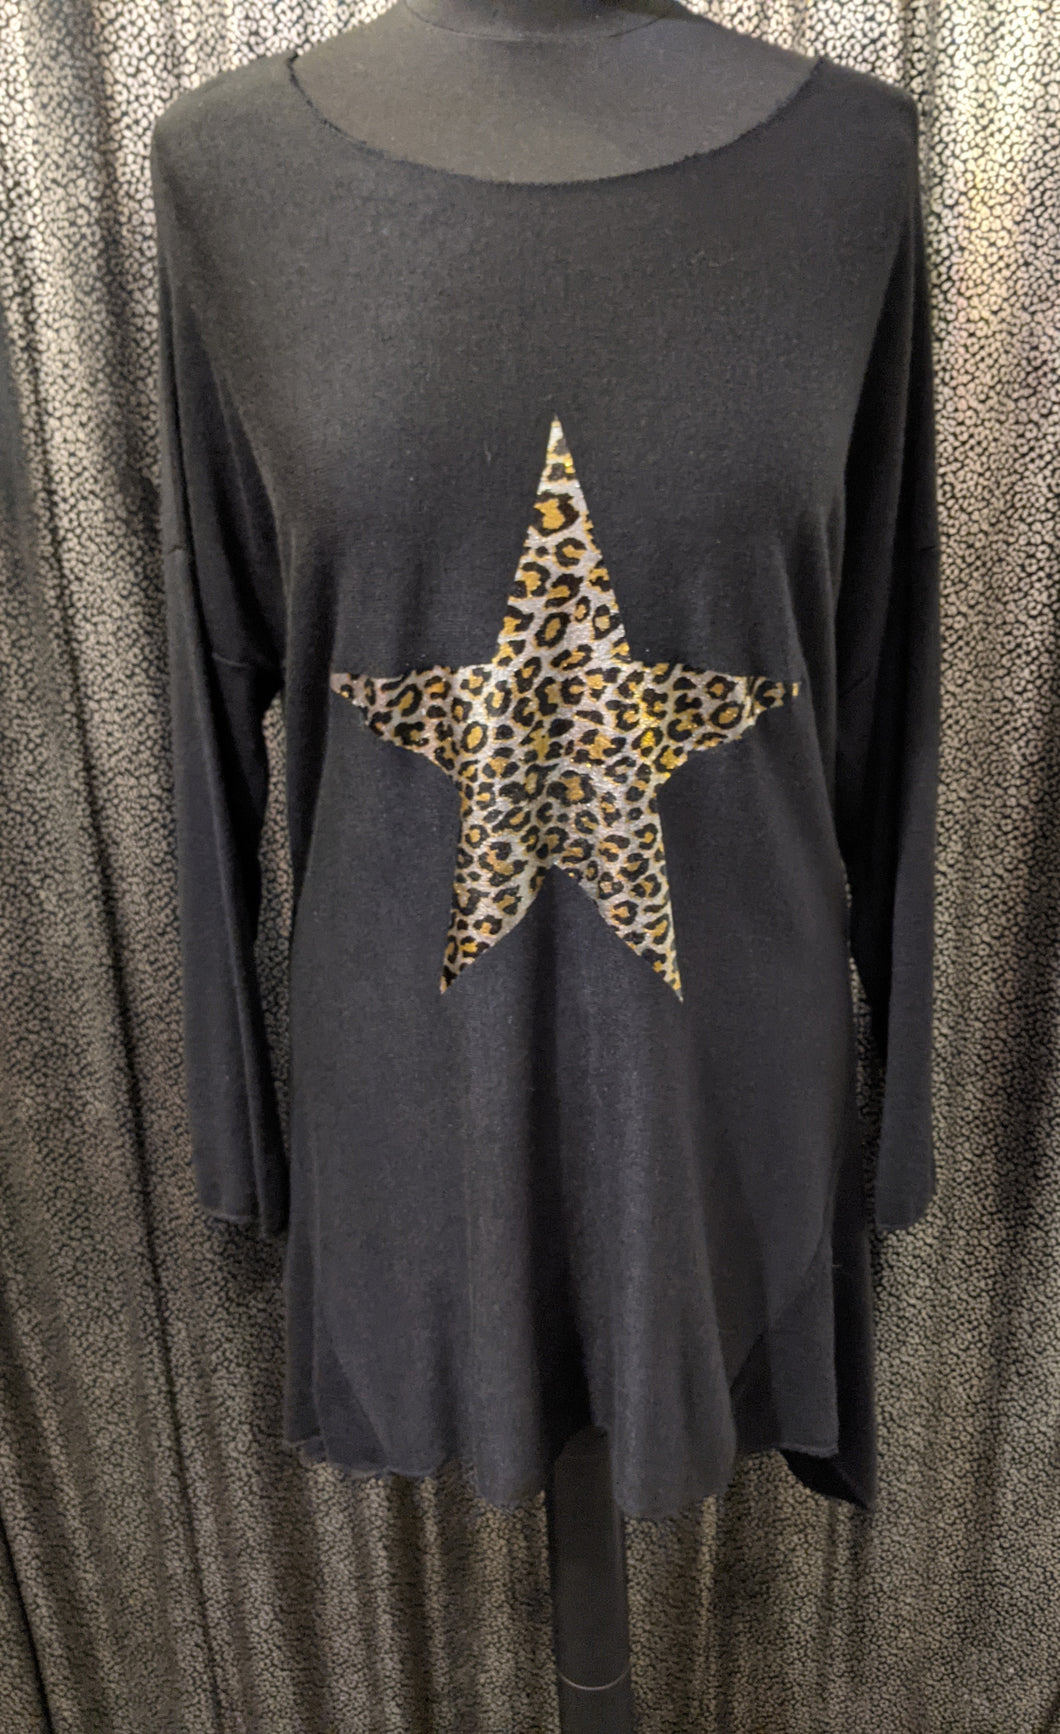 Made In Italy Soft Brushed Tunic with Foil Leopard Star